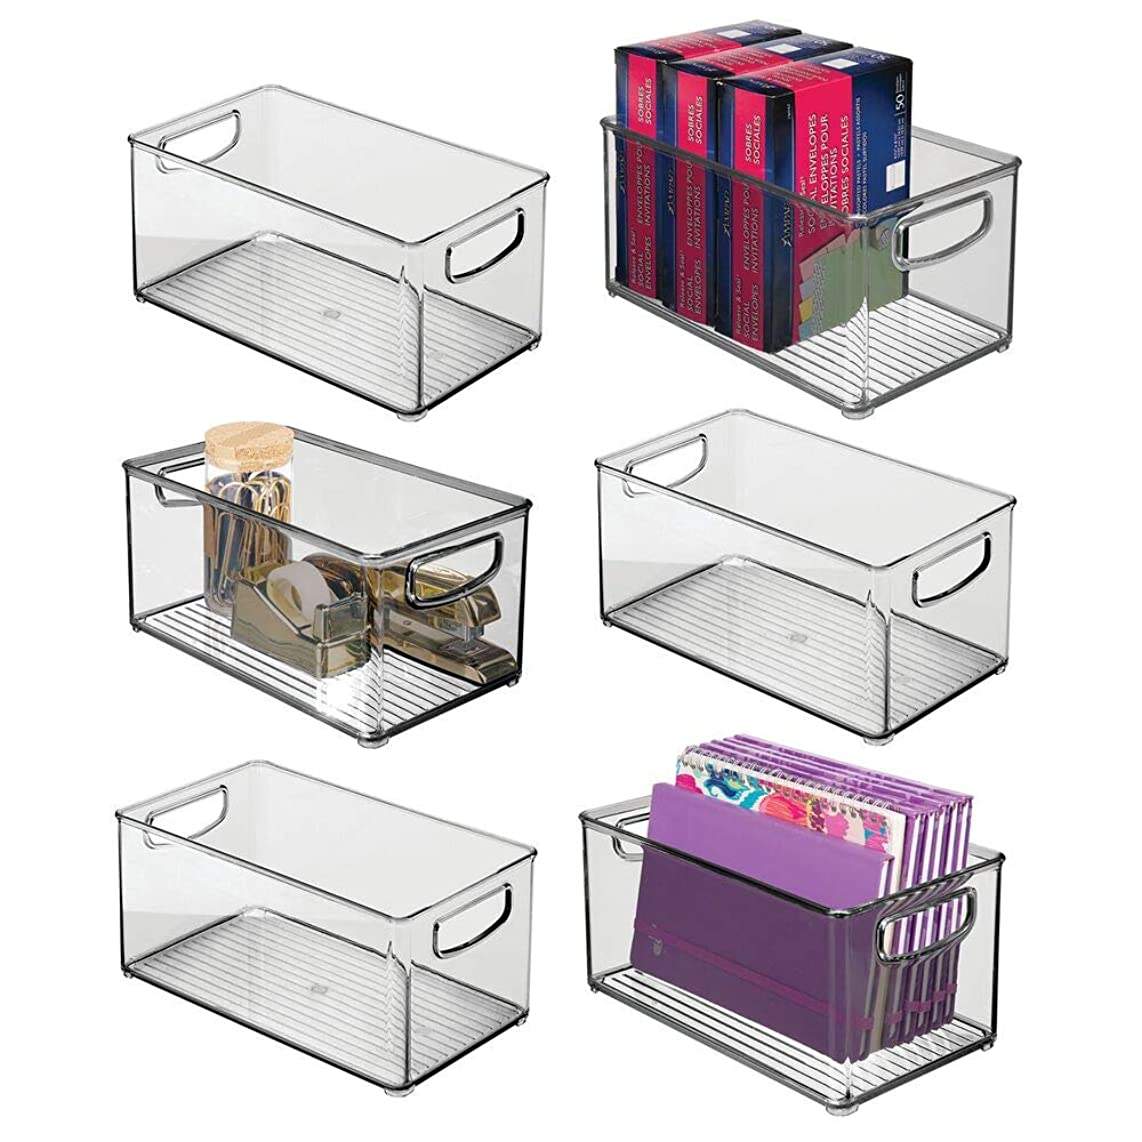 mDesign Stackable Plastic Storage Bin Container with Handles for Home Office - Holds Gel Pens, Erasers, Tape, Pens, Pencils, Markers, Notepads, Highlighters, Staplers - 5